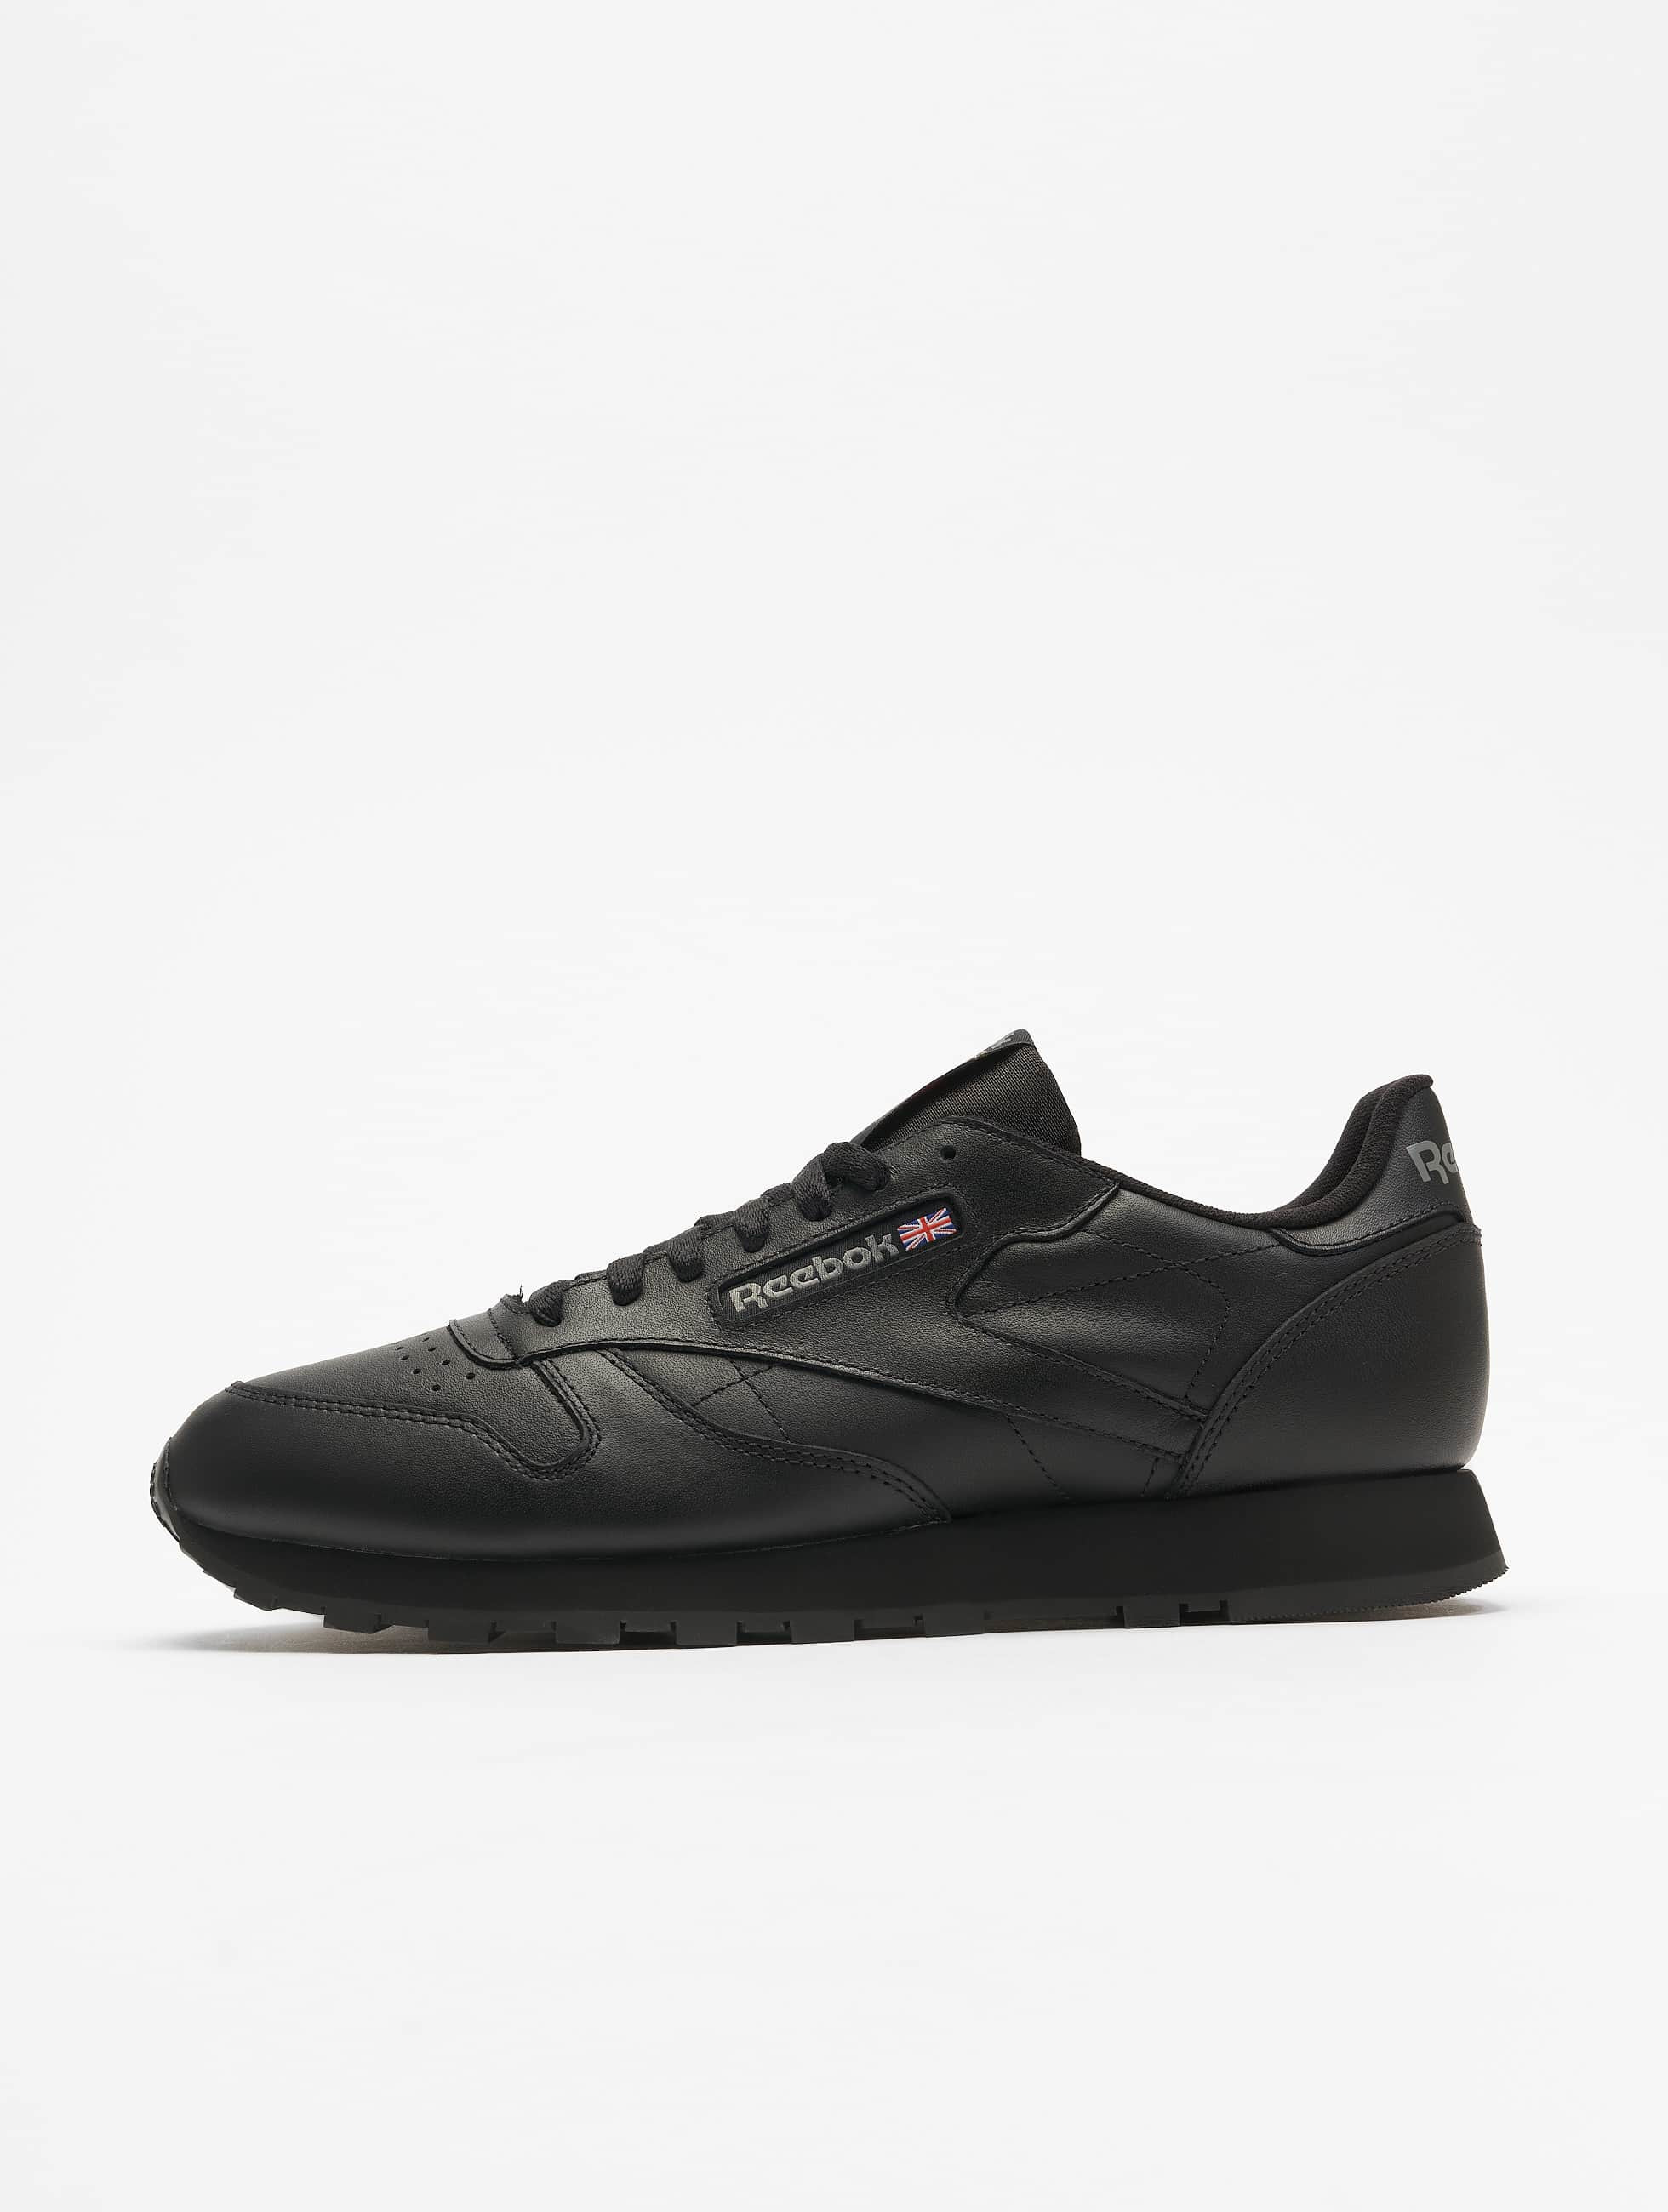 Leather Reebok Classic Shoes